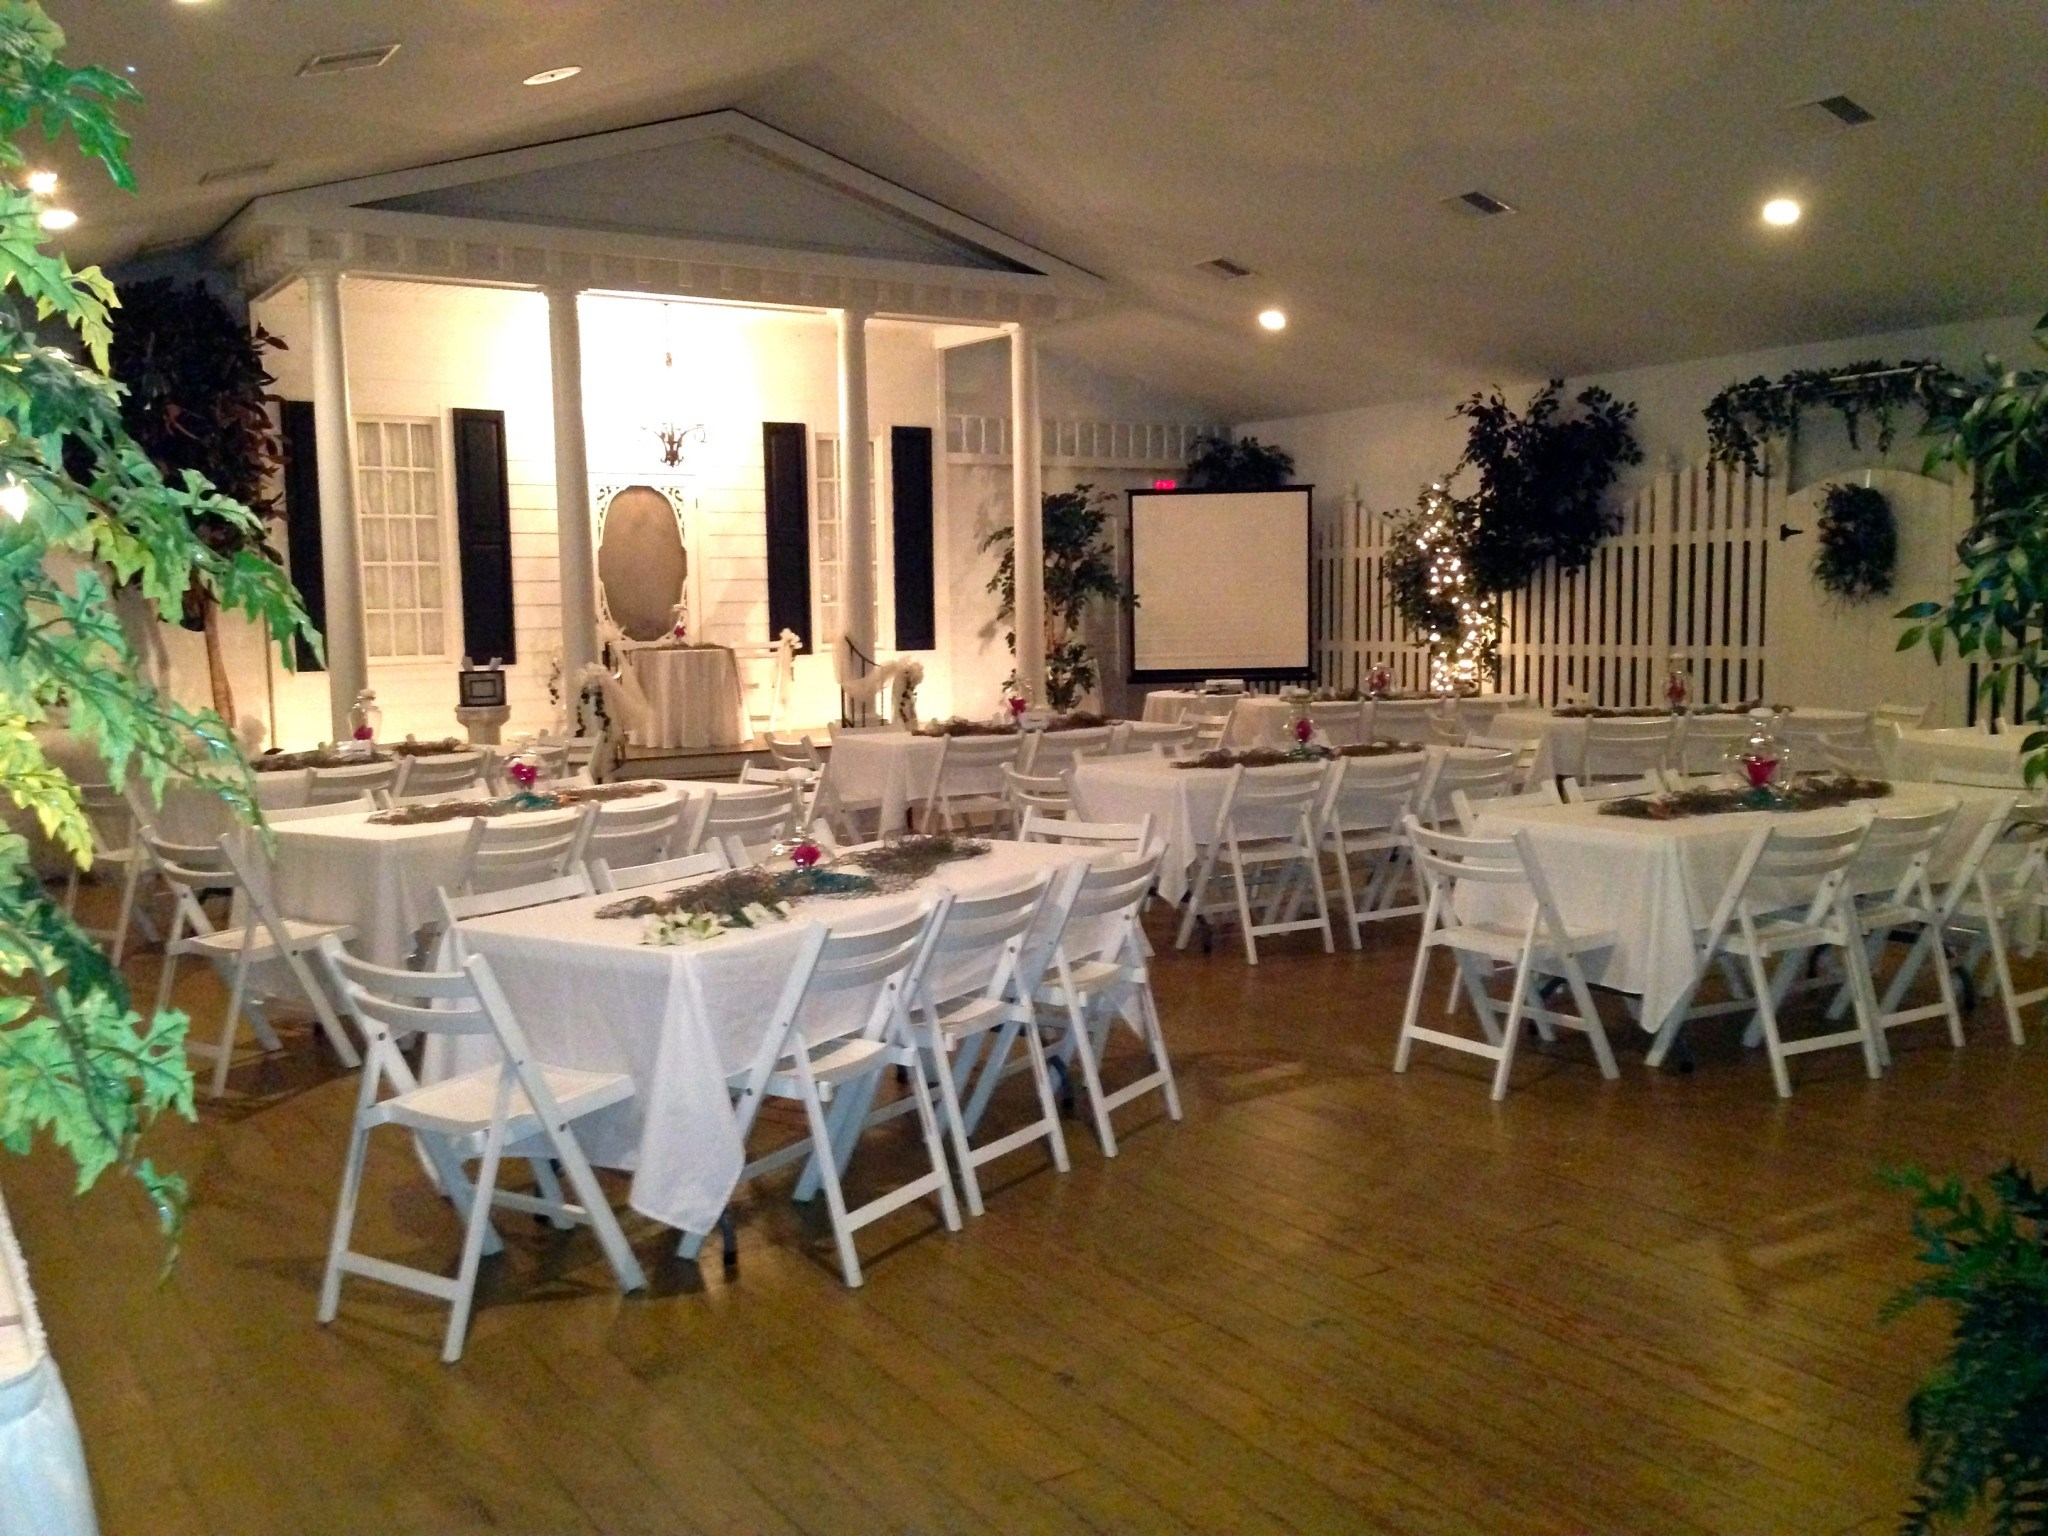 The Barn is our newest Wedding and Event venue